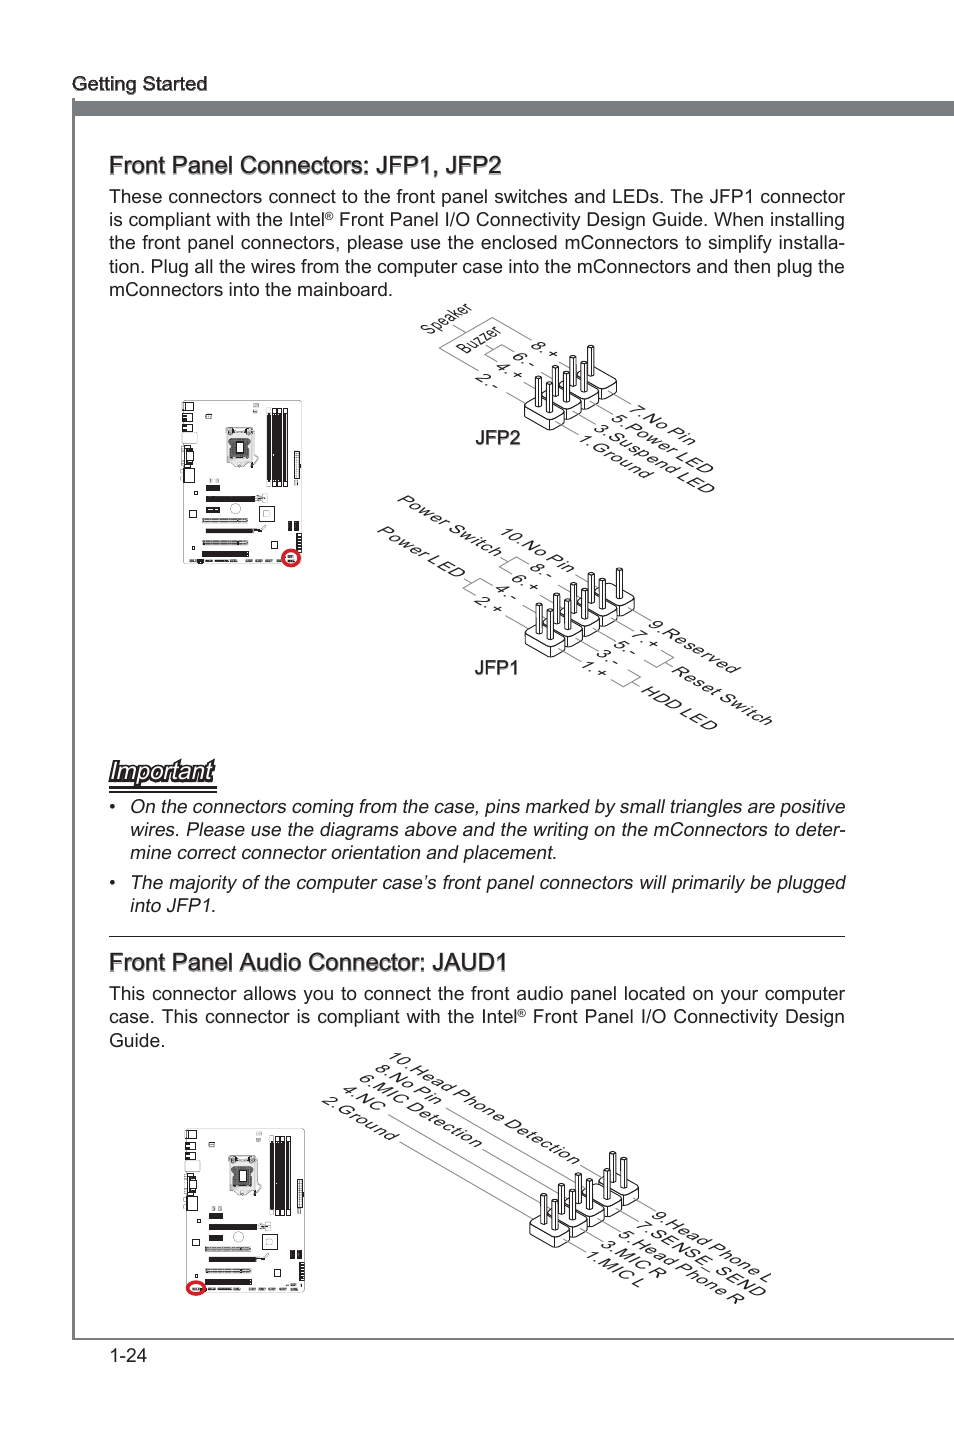 front panel connectors jfp1, jfp2, front panel audio connector Female Audio Jack Wiring front panel connectors jfp1, jfp2, front panel audio connector jaud1, front panel connectors msi z68a g43 (g3) user manual page 34 80